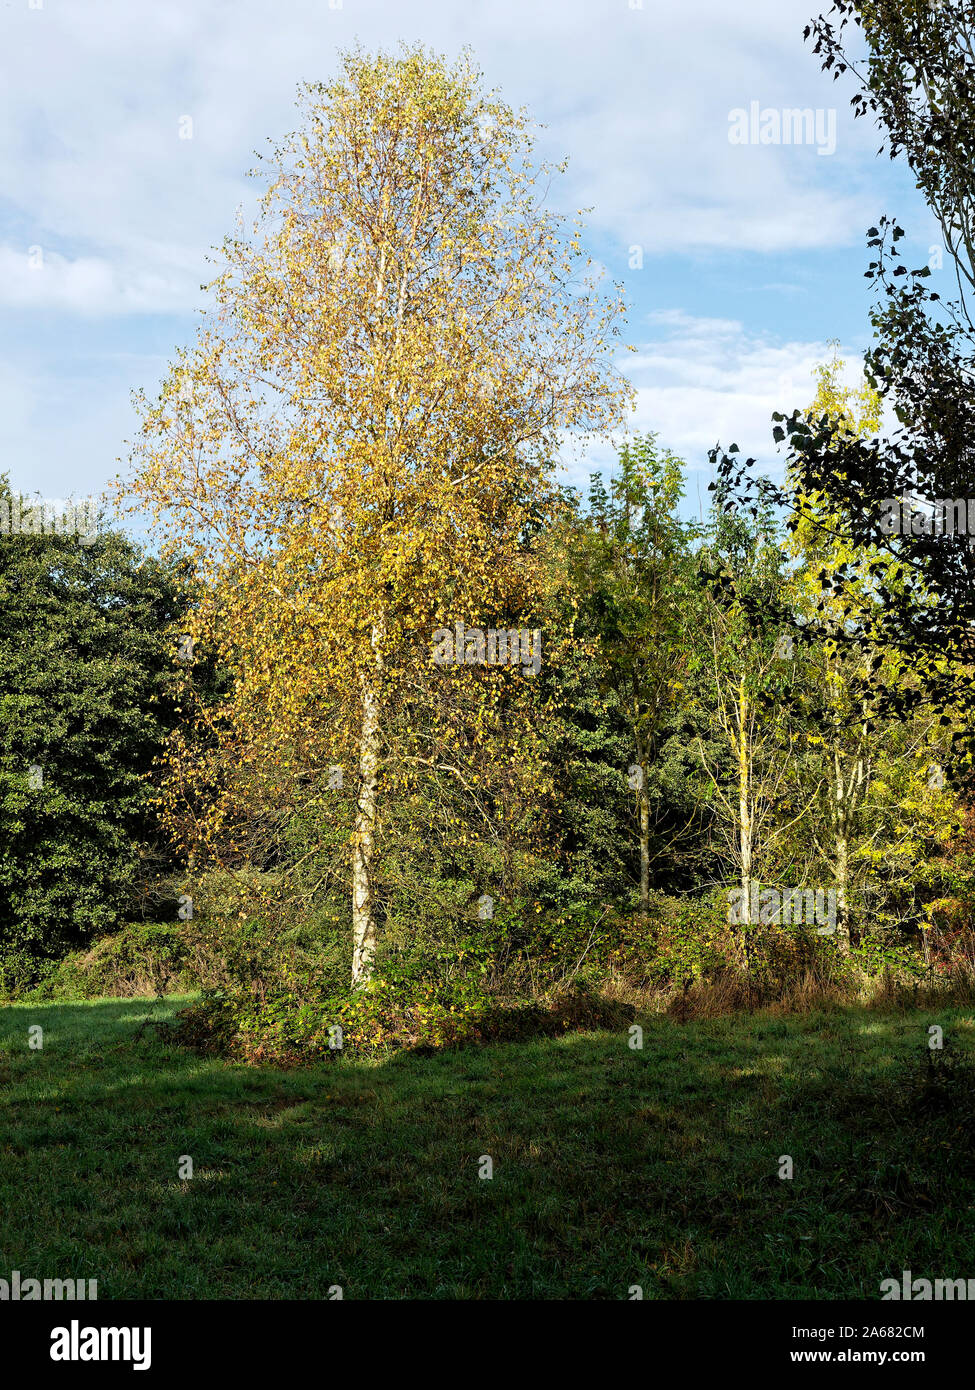 A silver birch tree (Betula pendula) with pale white trunk and golden autumn leaves in Pigney's Wood nature reserve near North Wlasham, Norfolk. Stock Photo